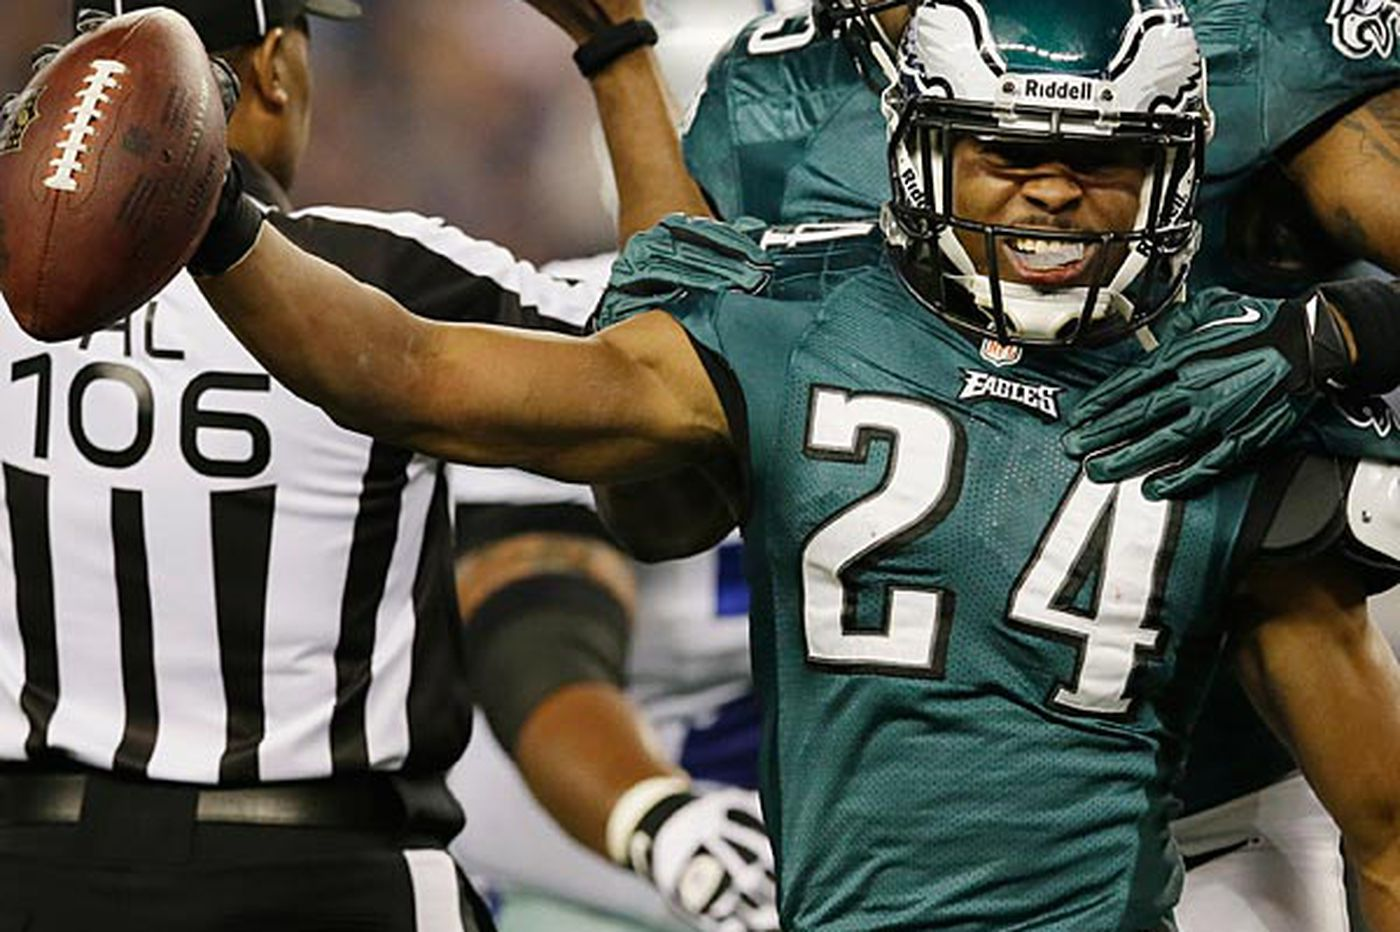 Another big step in Eagles' unlikely revival